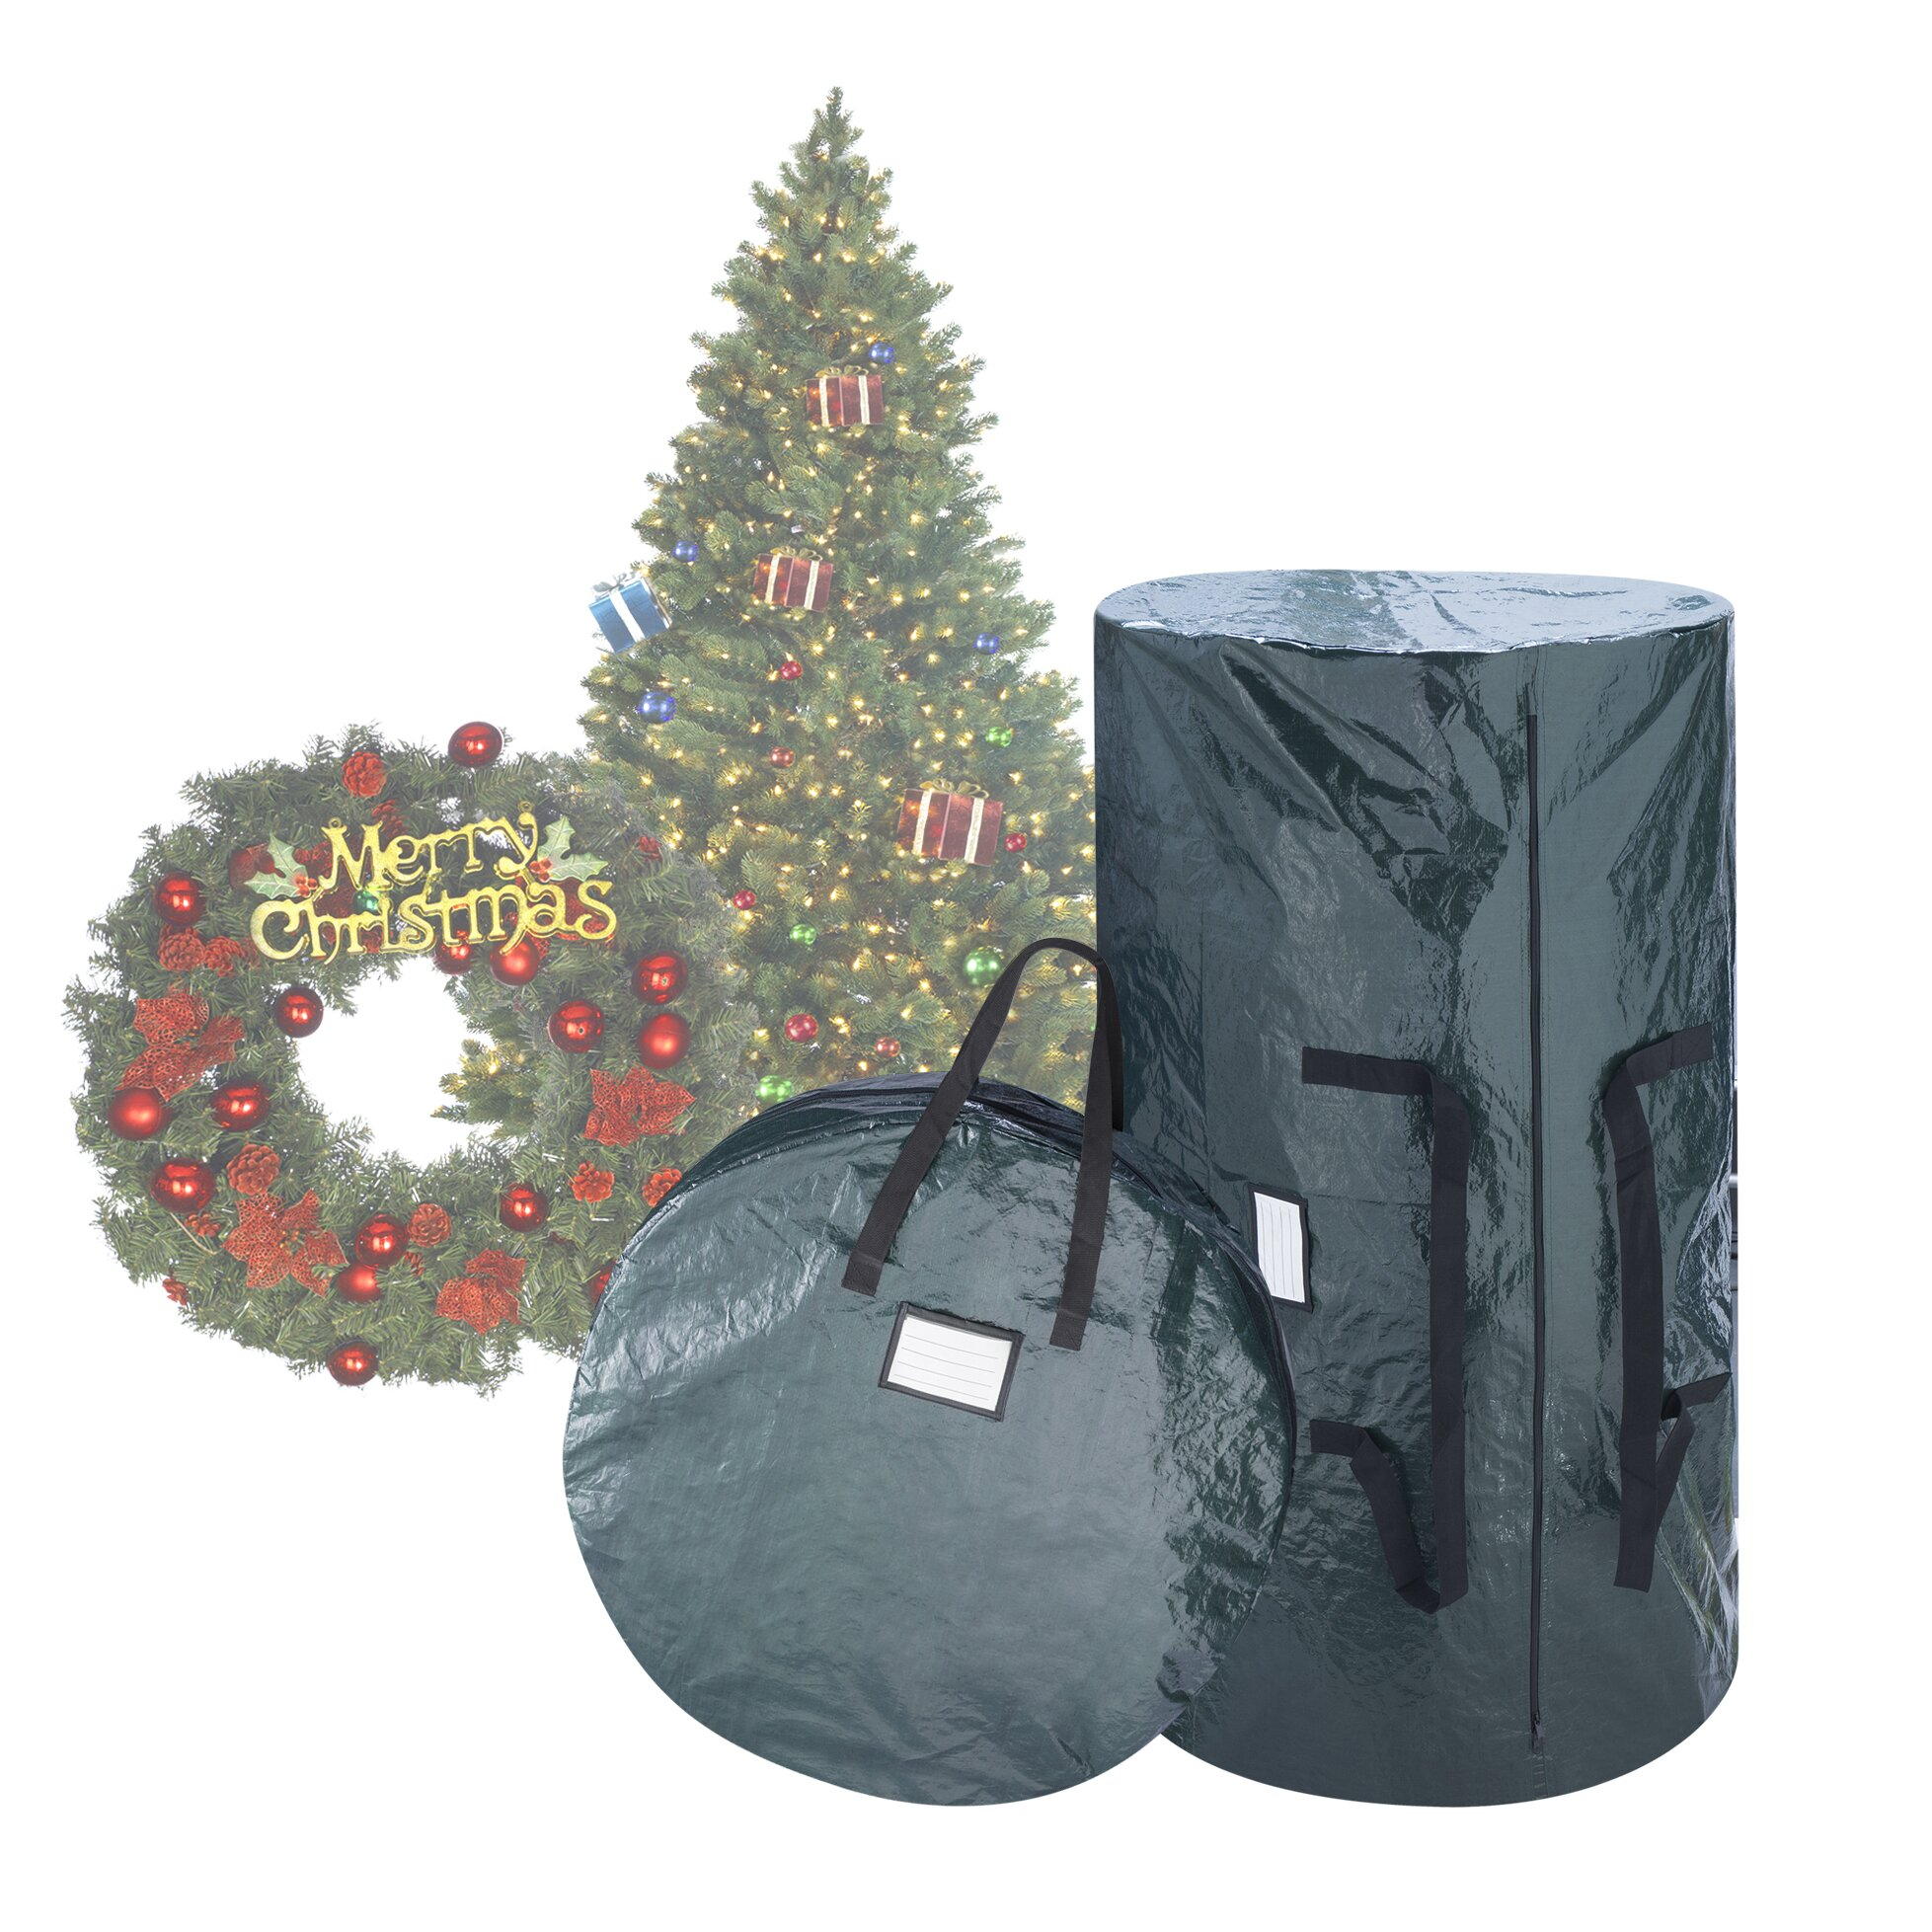 Storage bags for christmas trees - Elf Stor 2 Piece Deluxe Green Christmas Tree Storage Bag Set